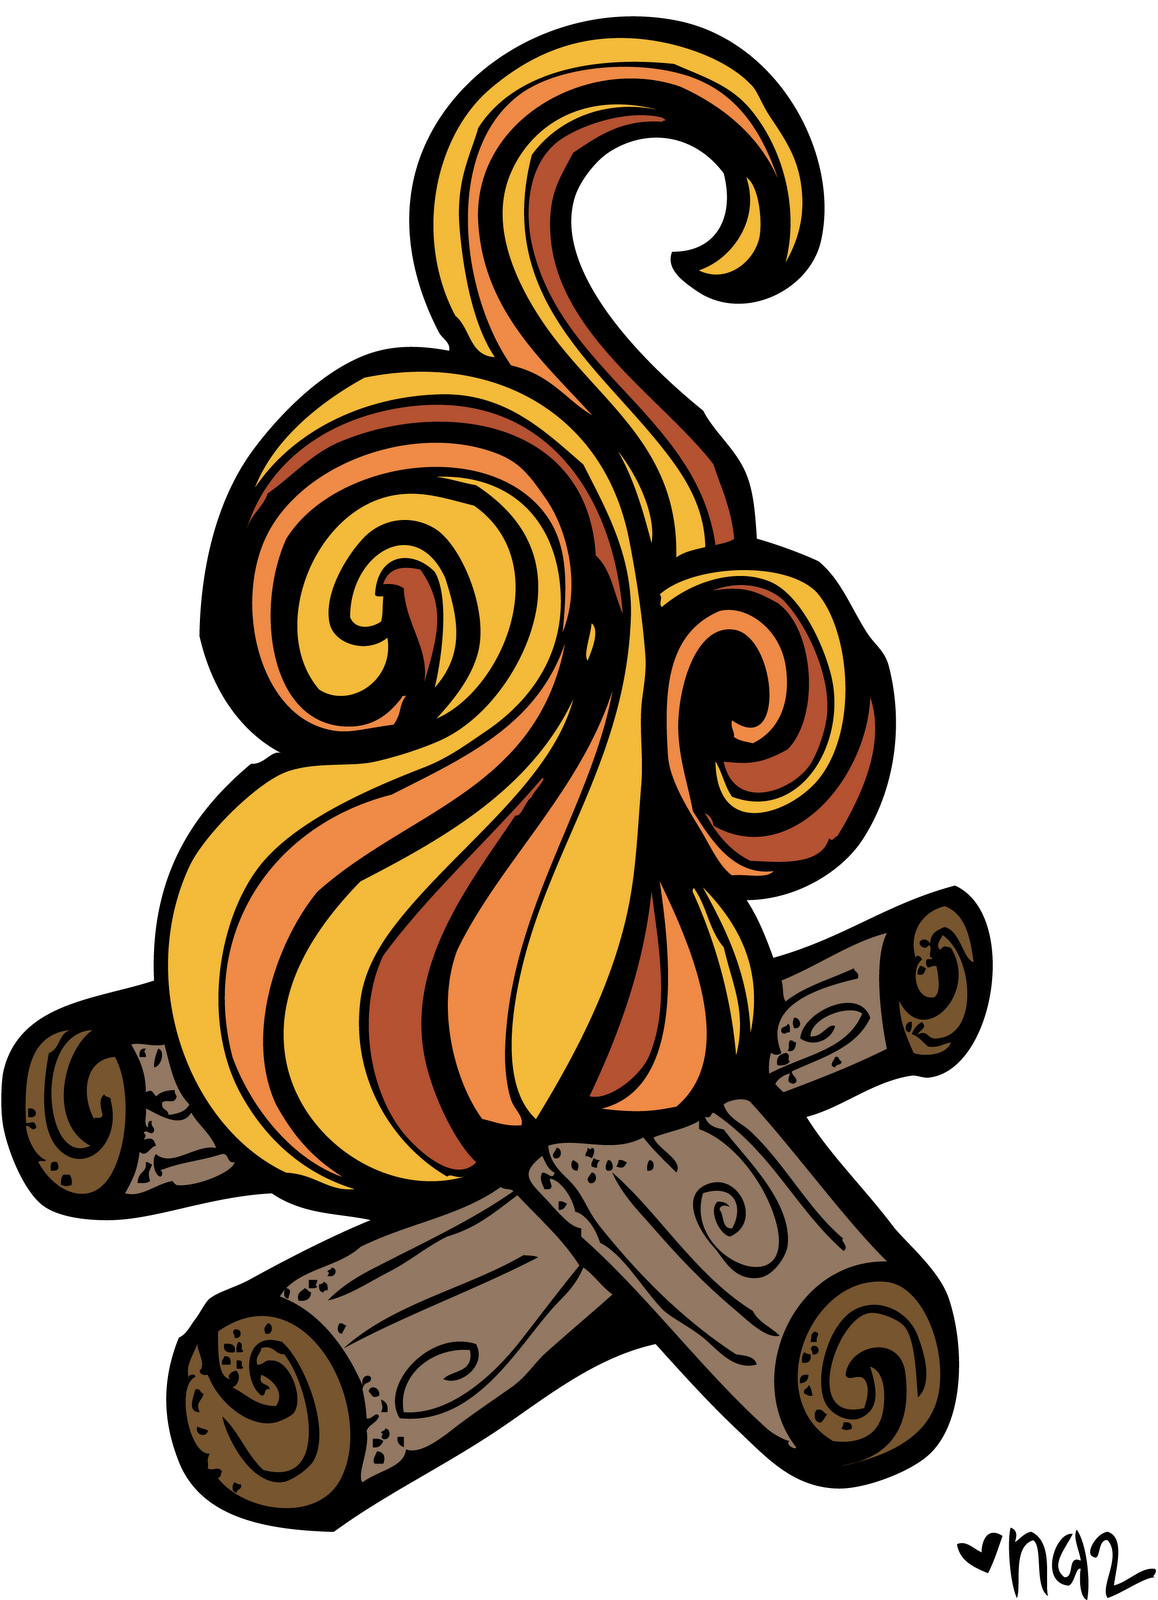 Lds clipart children's. Free camp fire download